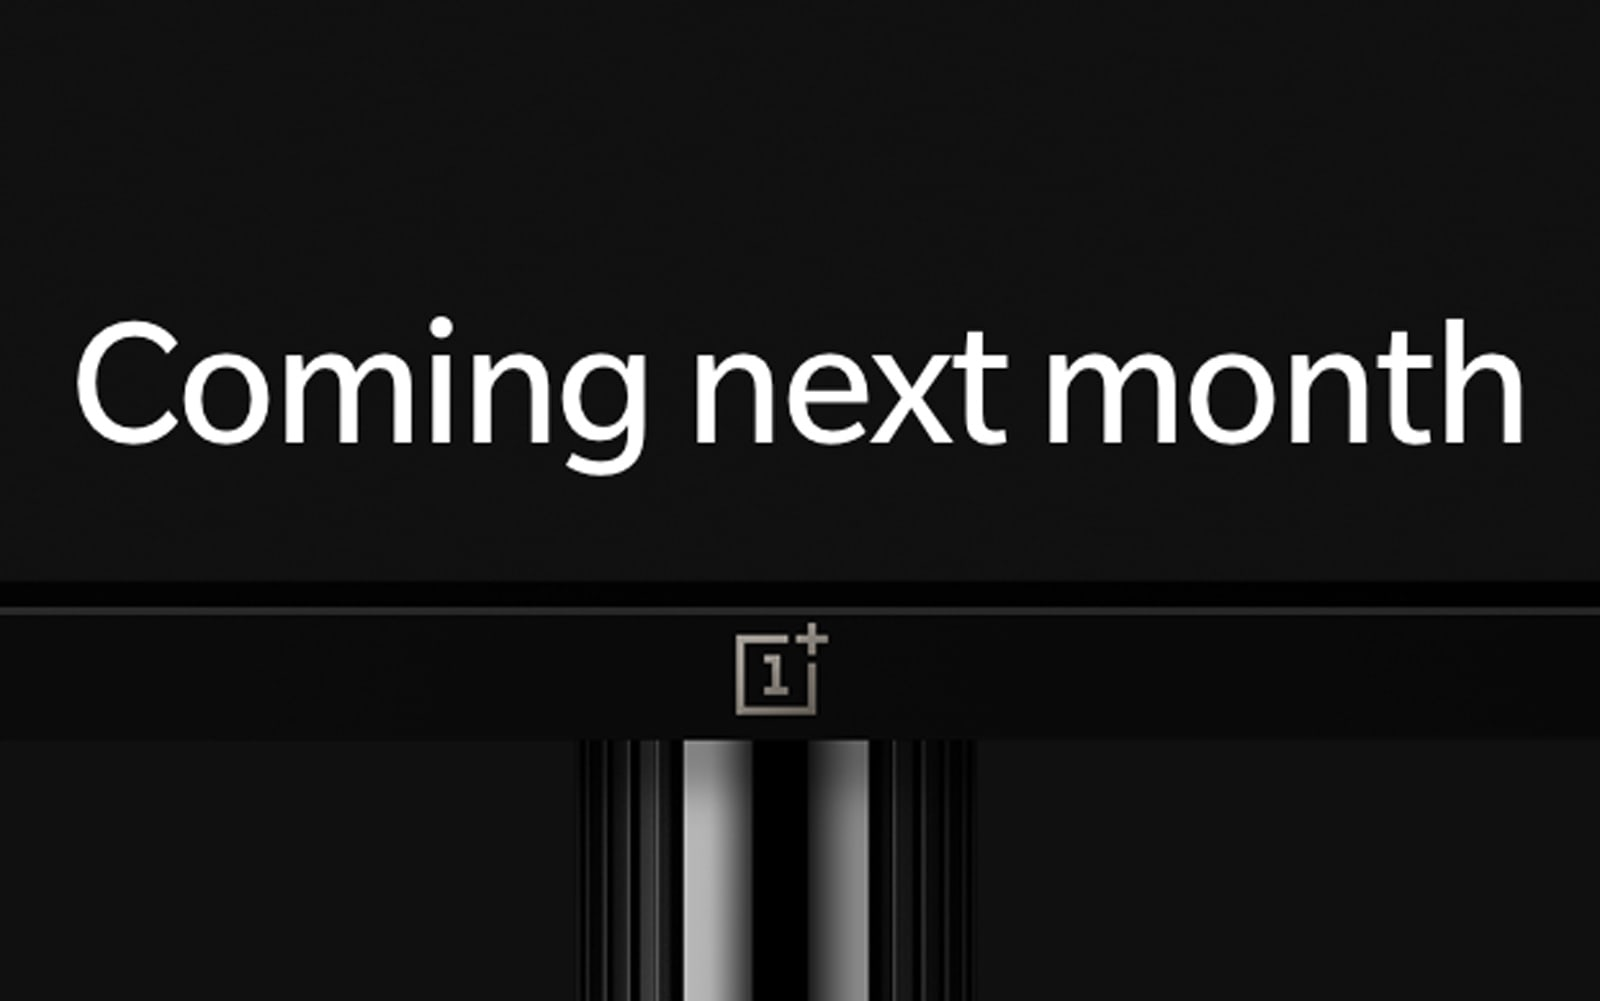 OnePlus TV arrives in India next month